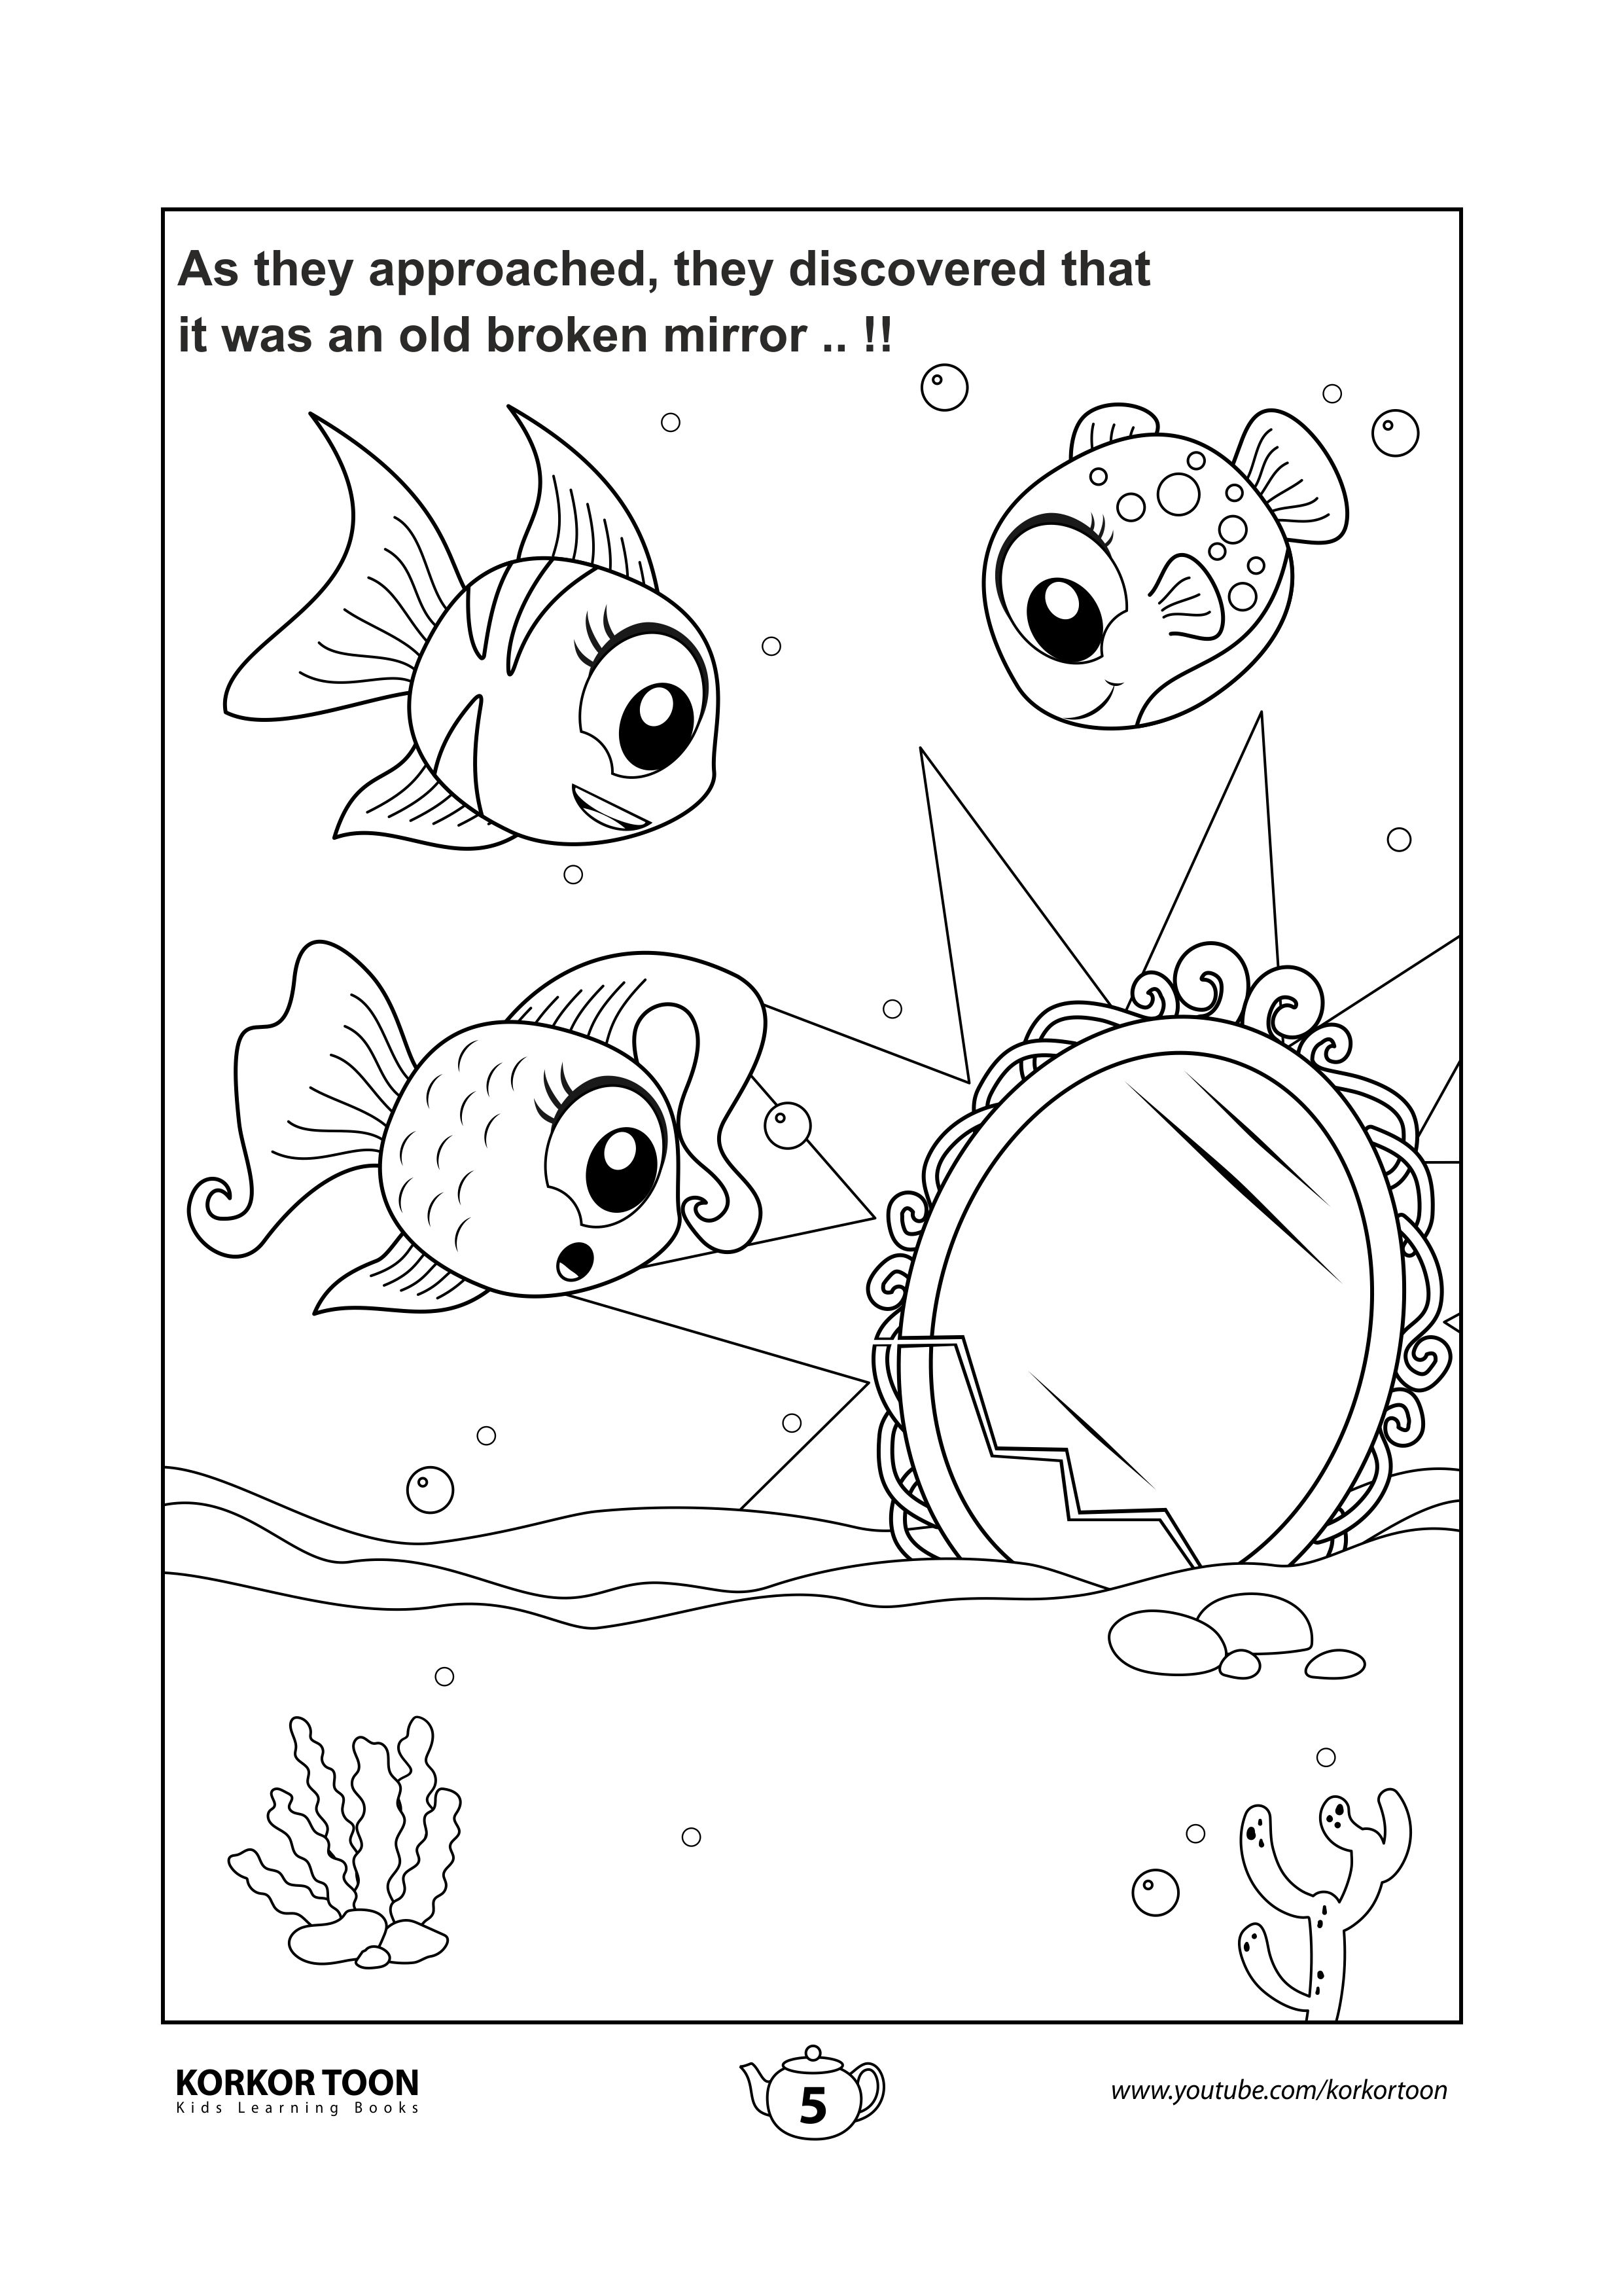 Coloring Page 5 The Special Fish Story Coloring Book Coloring Books Kids Coloring Books Coloring Pages